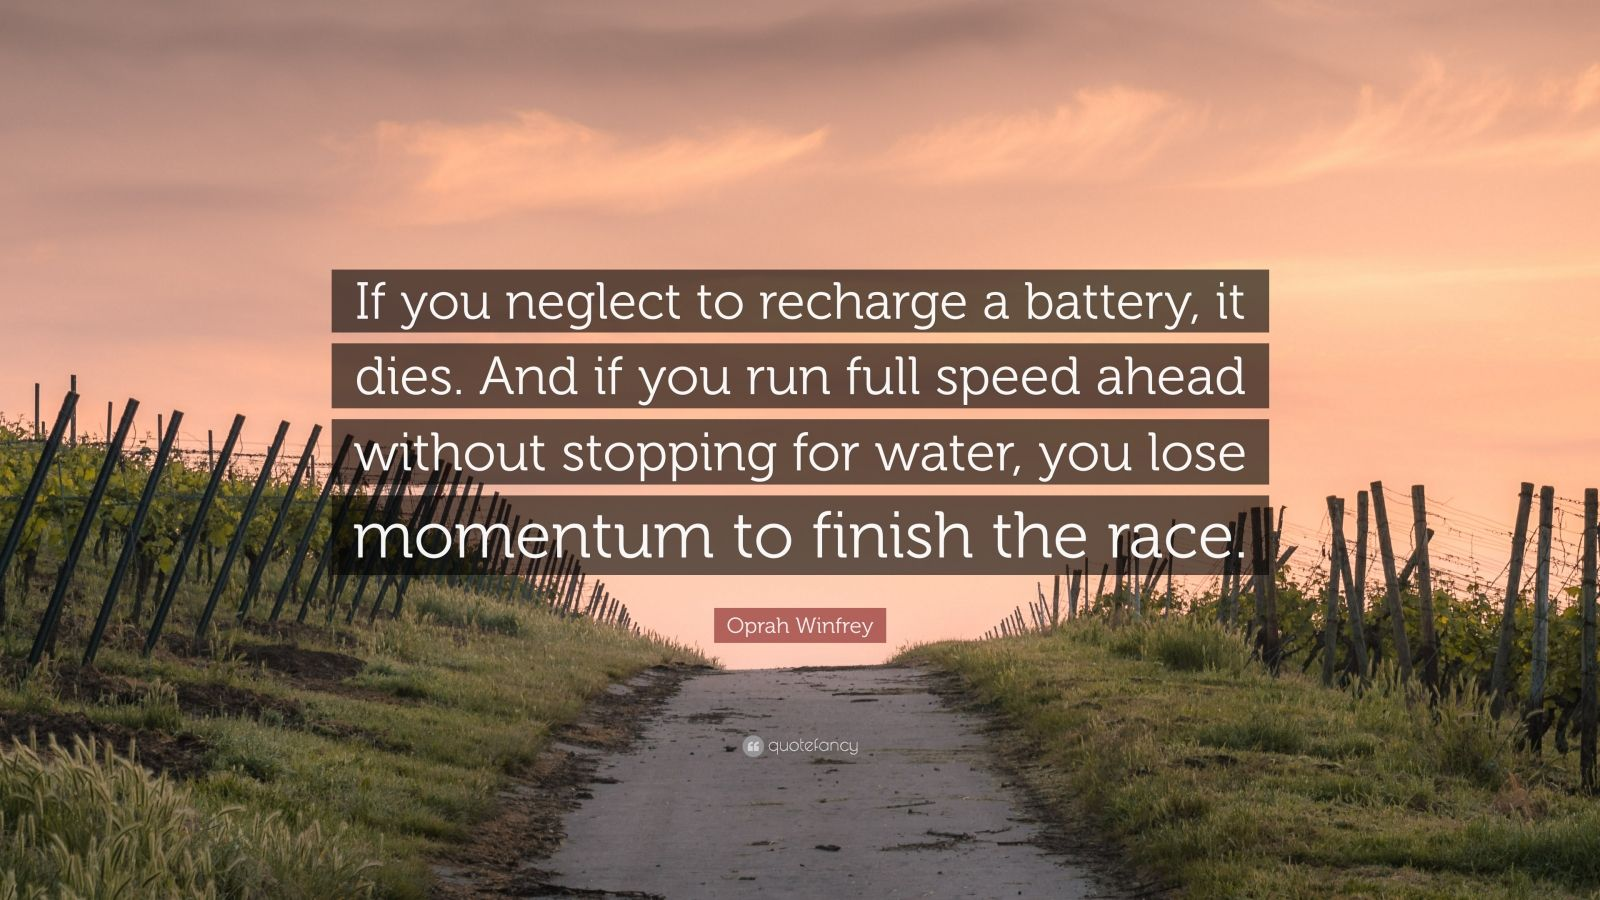 """Oprah Winfrey Quote: """"If you neglect to recharge a battery, it dies. And if you run full speed ahead without stopping for water, you lose momentum to finish the race."""""""